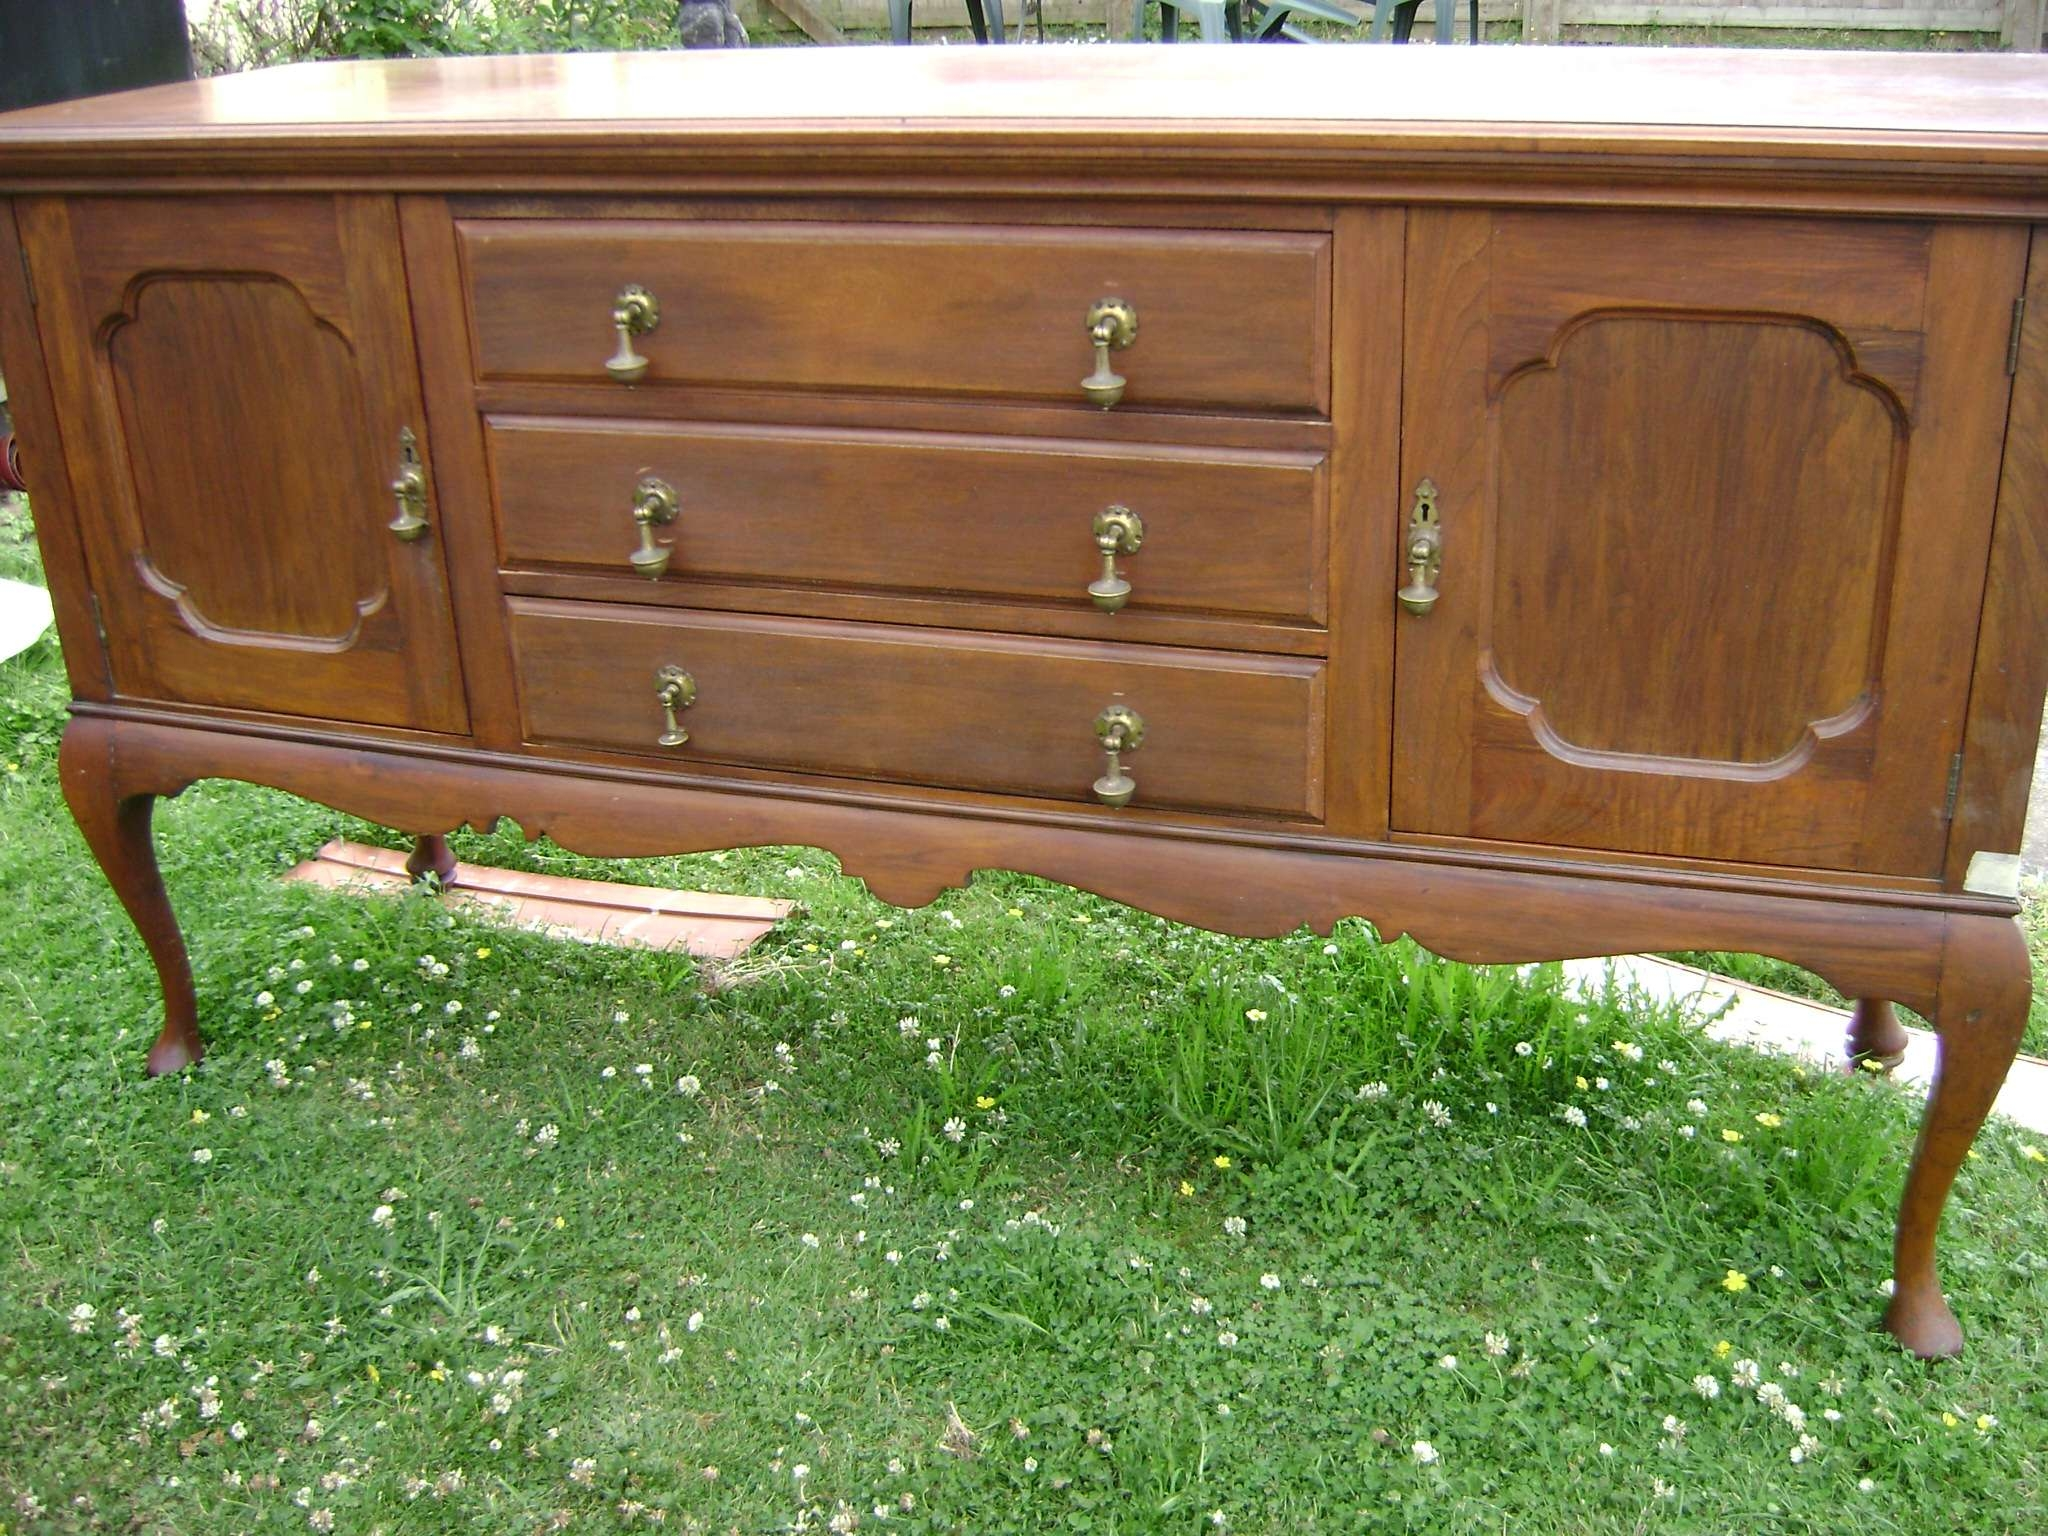 French Style Sideboard | The Barrister's Horse Throughout Annie Sloan Painted Sideboards (View 7 of 20)